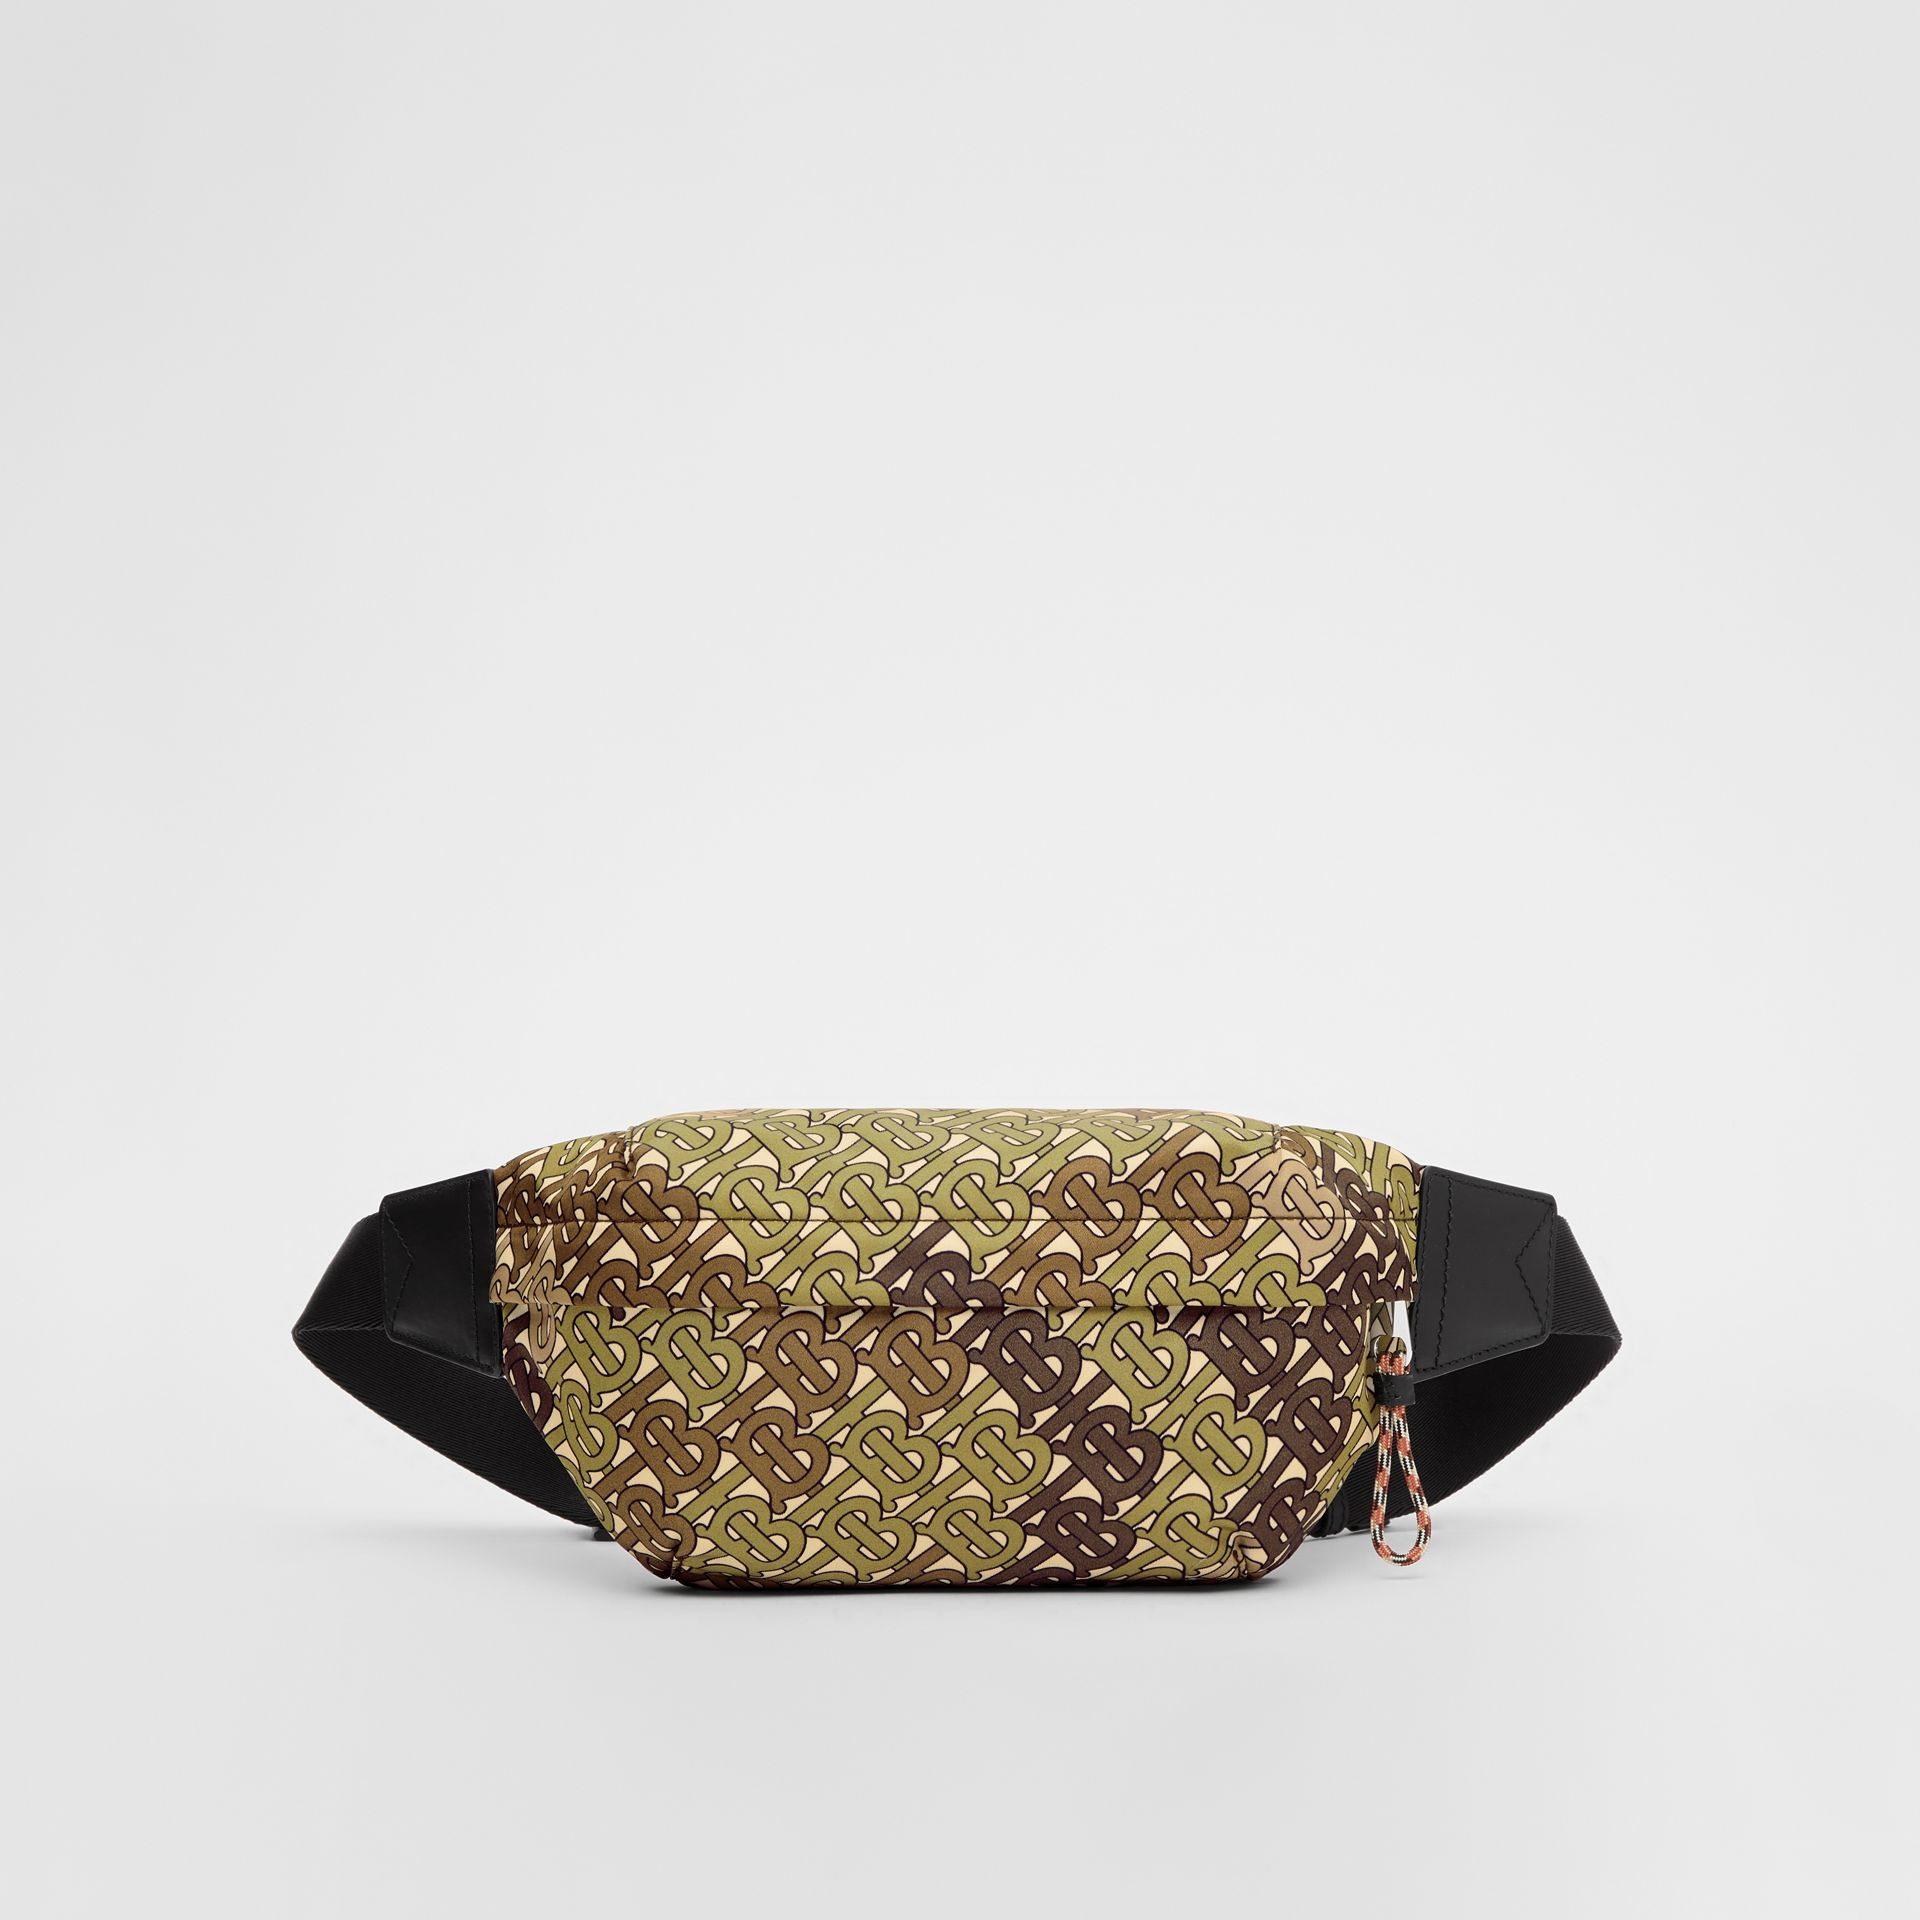 Medium Monogram Print Bum Bag in Khaki Green | Burberry - gallery image 0